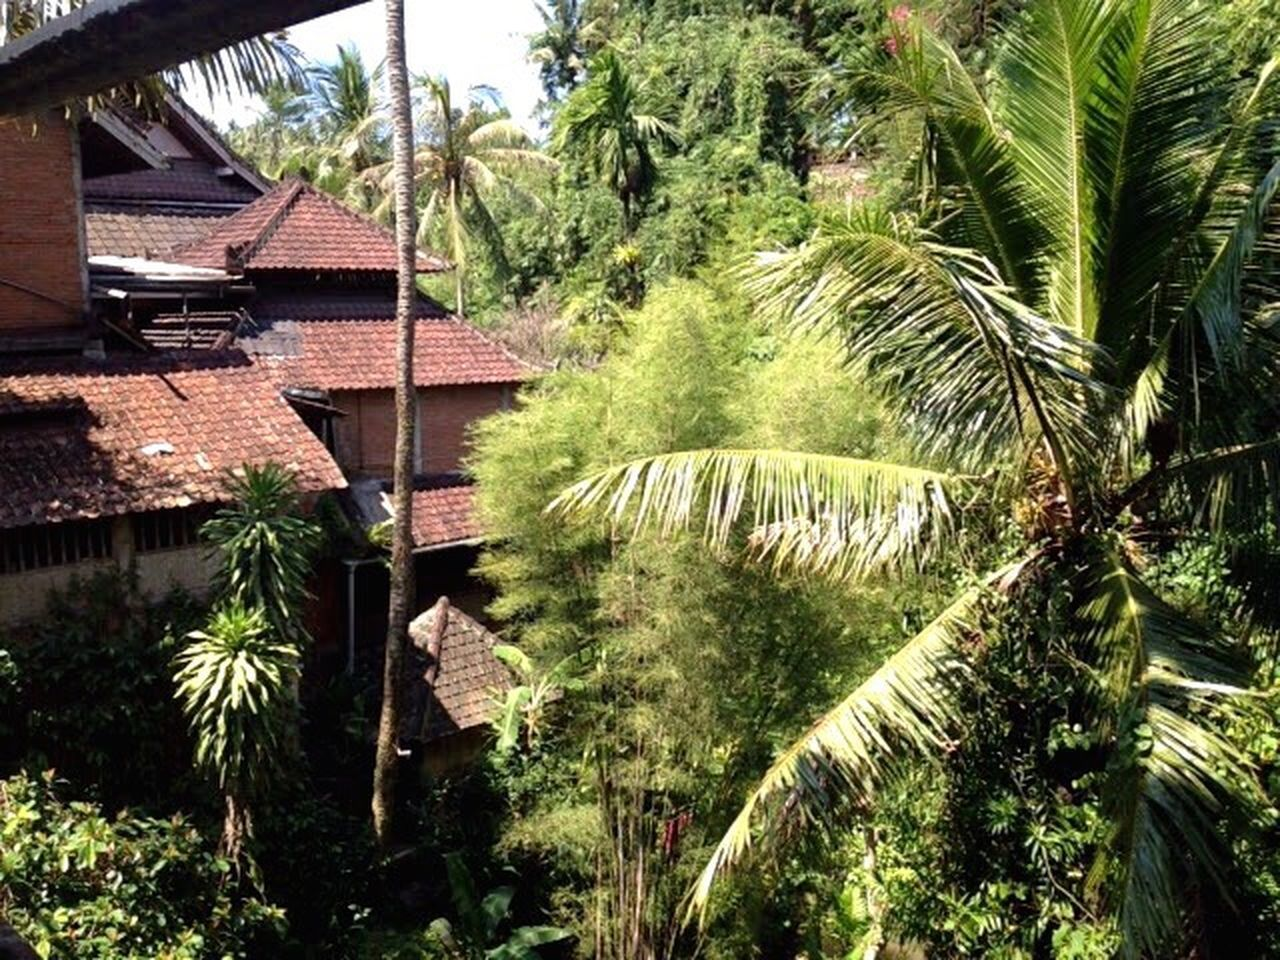 Landscape Plants Tree Growth Nature From My Point Of View Outdoors Beauty In Nature Color Portrait EyeEm Nature Lover EyeEm Gallery Light And Shadow Colors Green Travel Ubud Bali INDONESIA